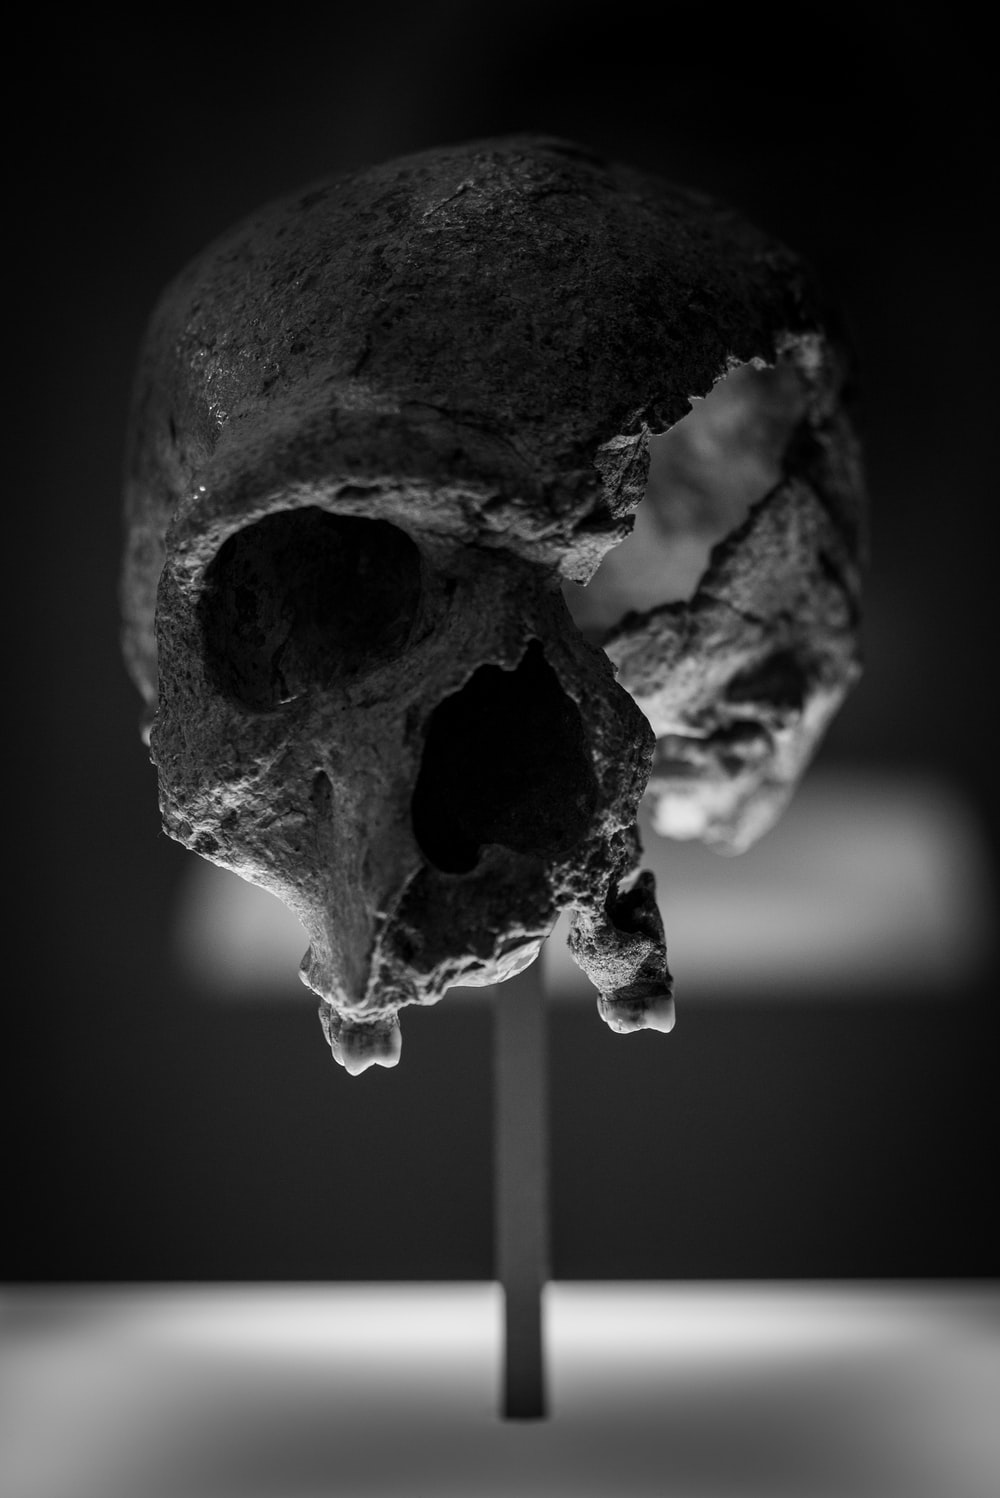 grayscale photography of a skull